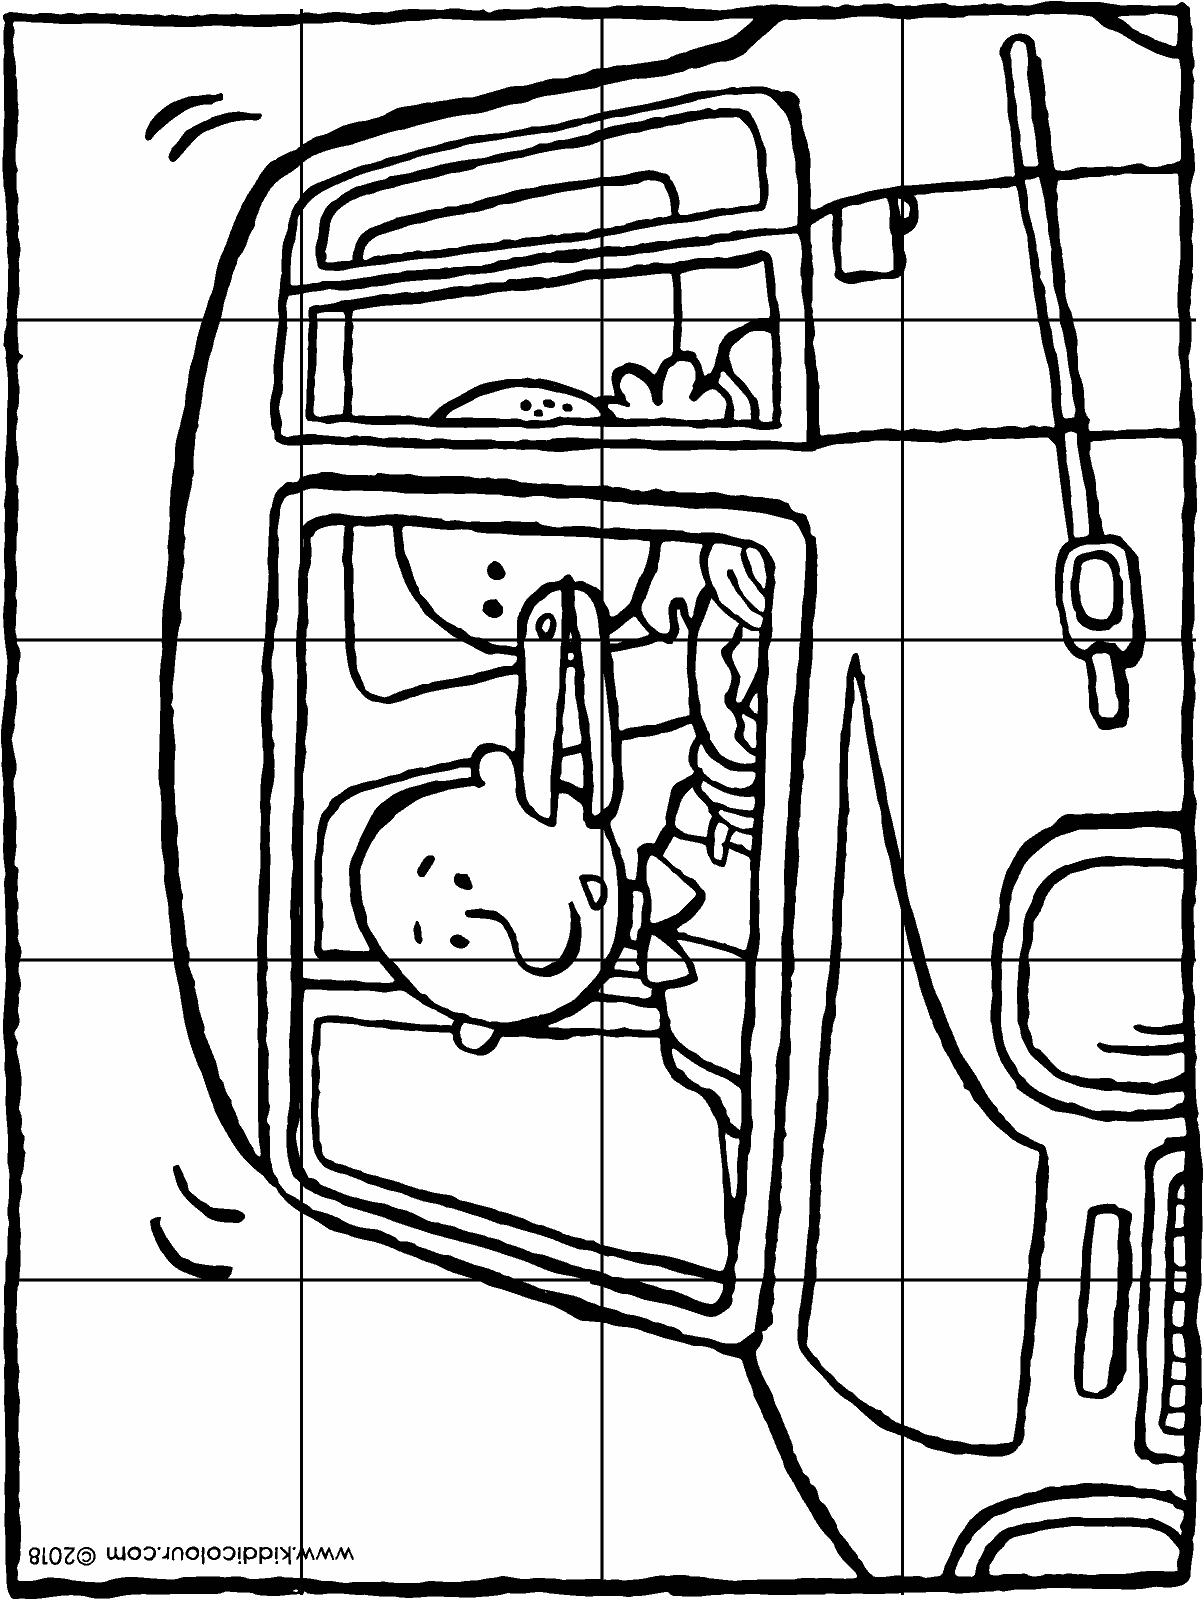 together in a little car puzzle 20 pieces colouring page drawing picture 01H